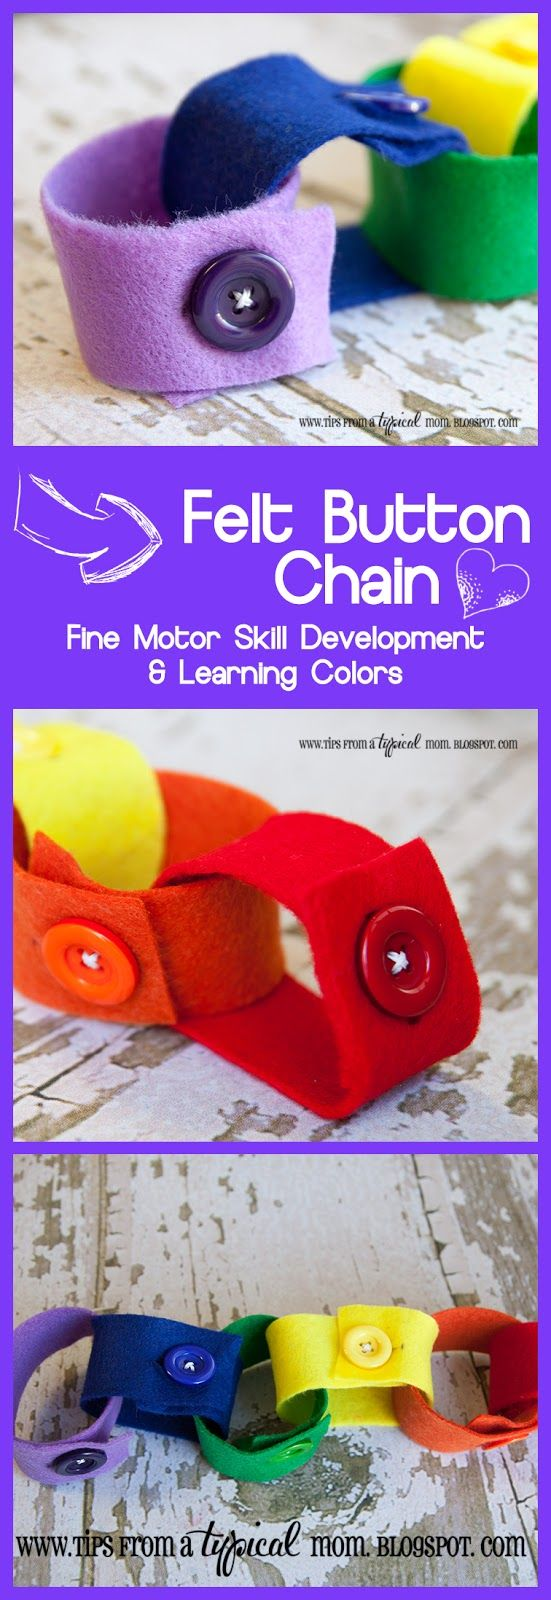 Tips from a Typical Mom: DIY Felt Button Chain~ Learning Fine Motor Skills & Colors